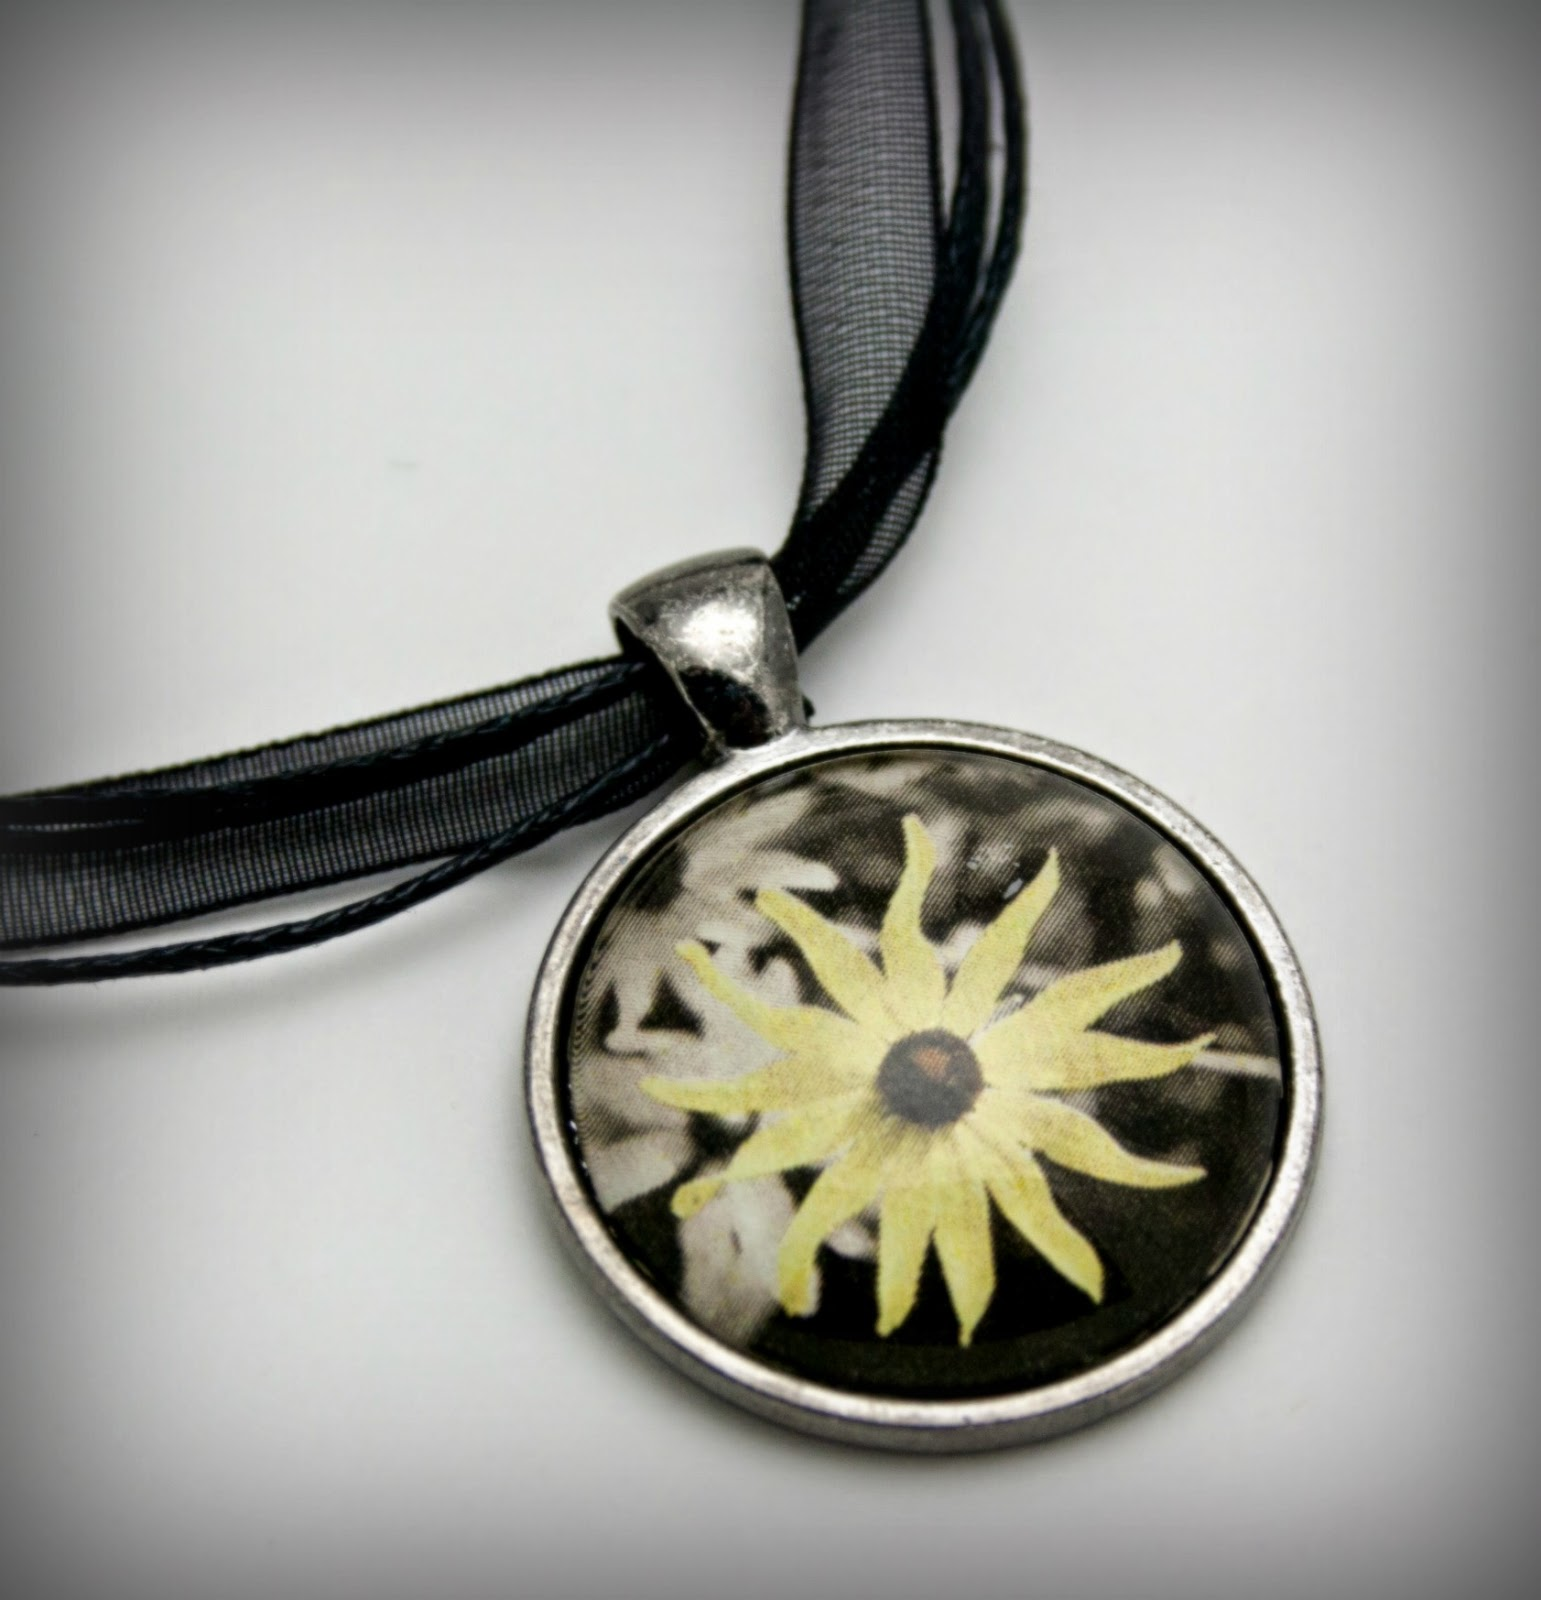 https://www.etsy.com/listing/188432237/black-eyed-susan-necklace-glass-pendant?ref=shop_home_active_13